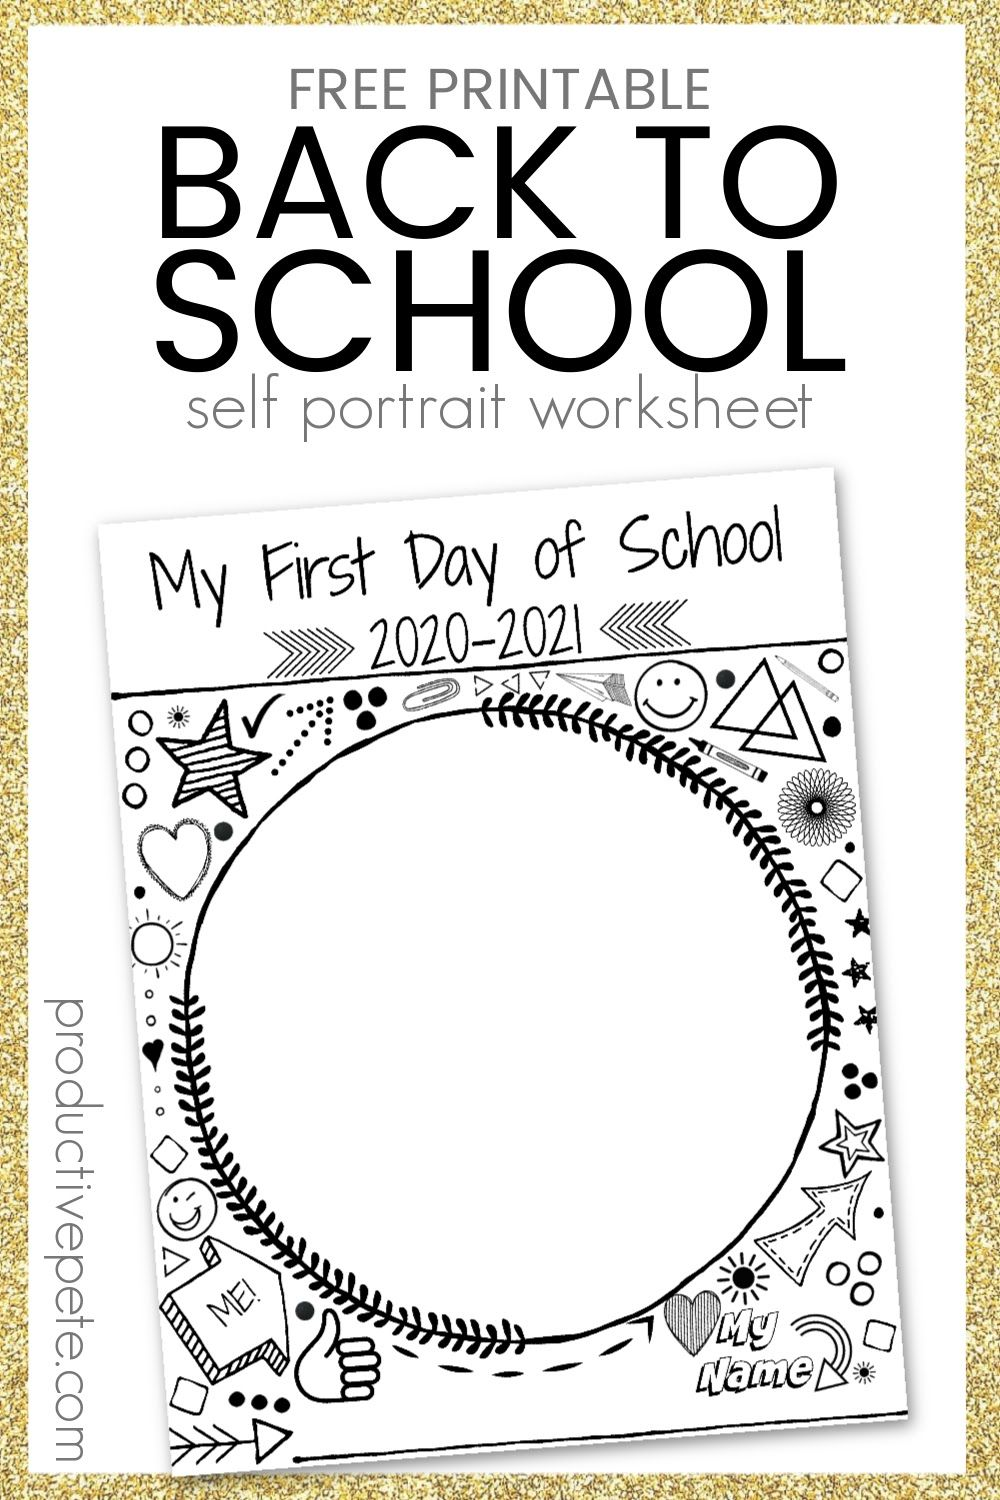 Back To School Worksheet For The First Day Of School 2020 2021 School Worksheets First Day Of School Back To School Worksheets [ 1500 x 1000 Pixel ]